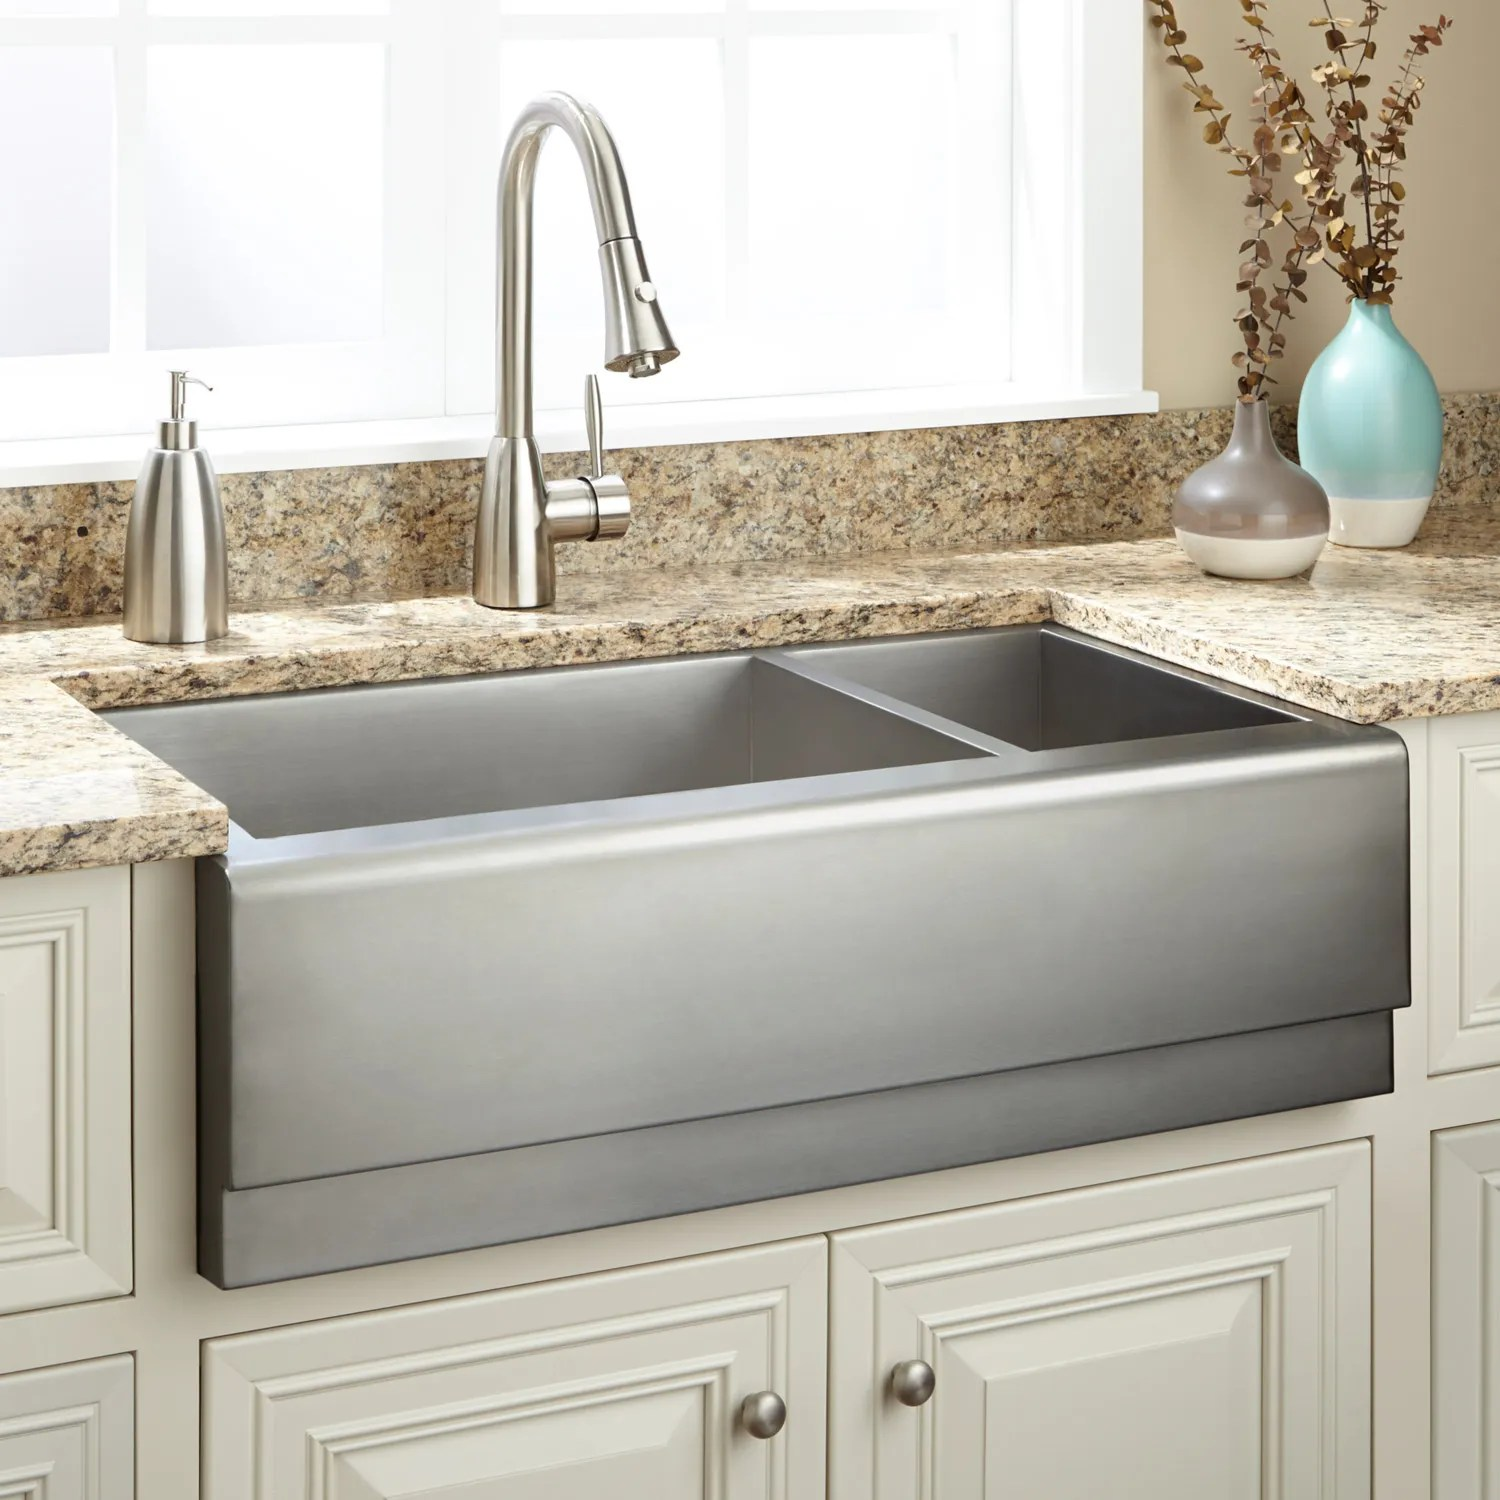 30 Offset Double Bowl Stainless Steel Farmhouse Sink Tiered